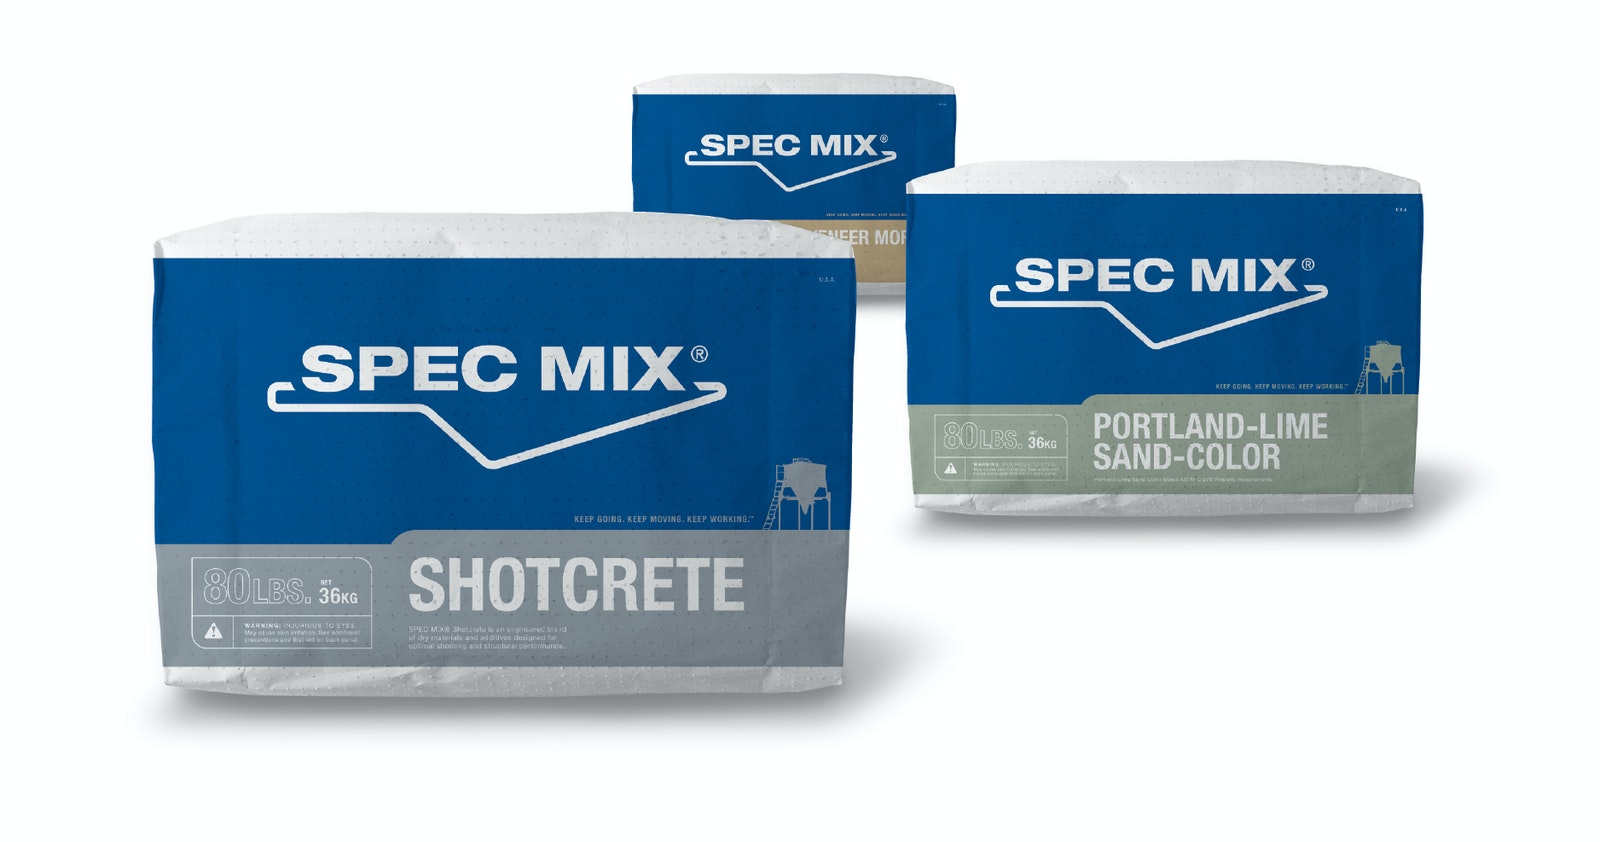 Specmix bags outline